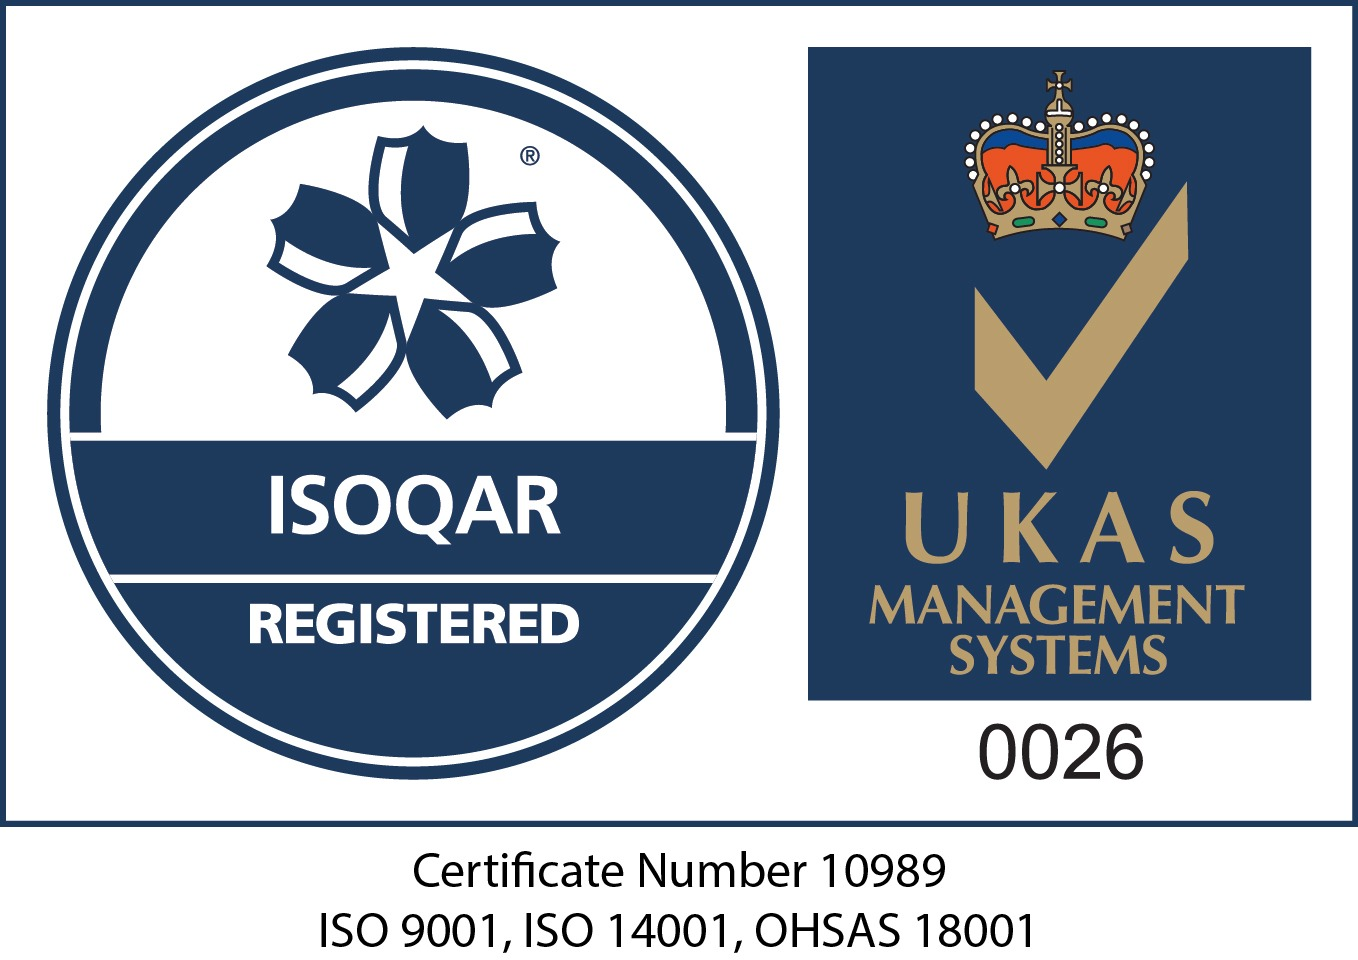 Wiser Environment's ISOQAR management systems logo